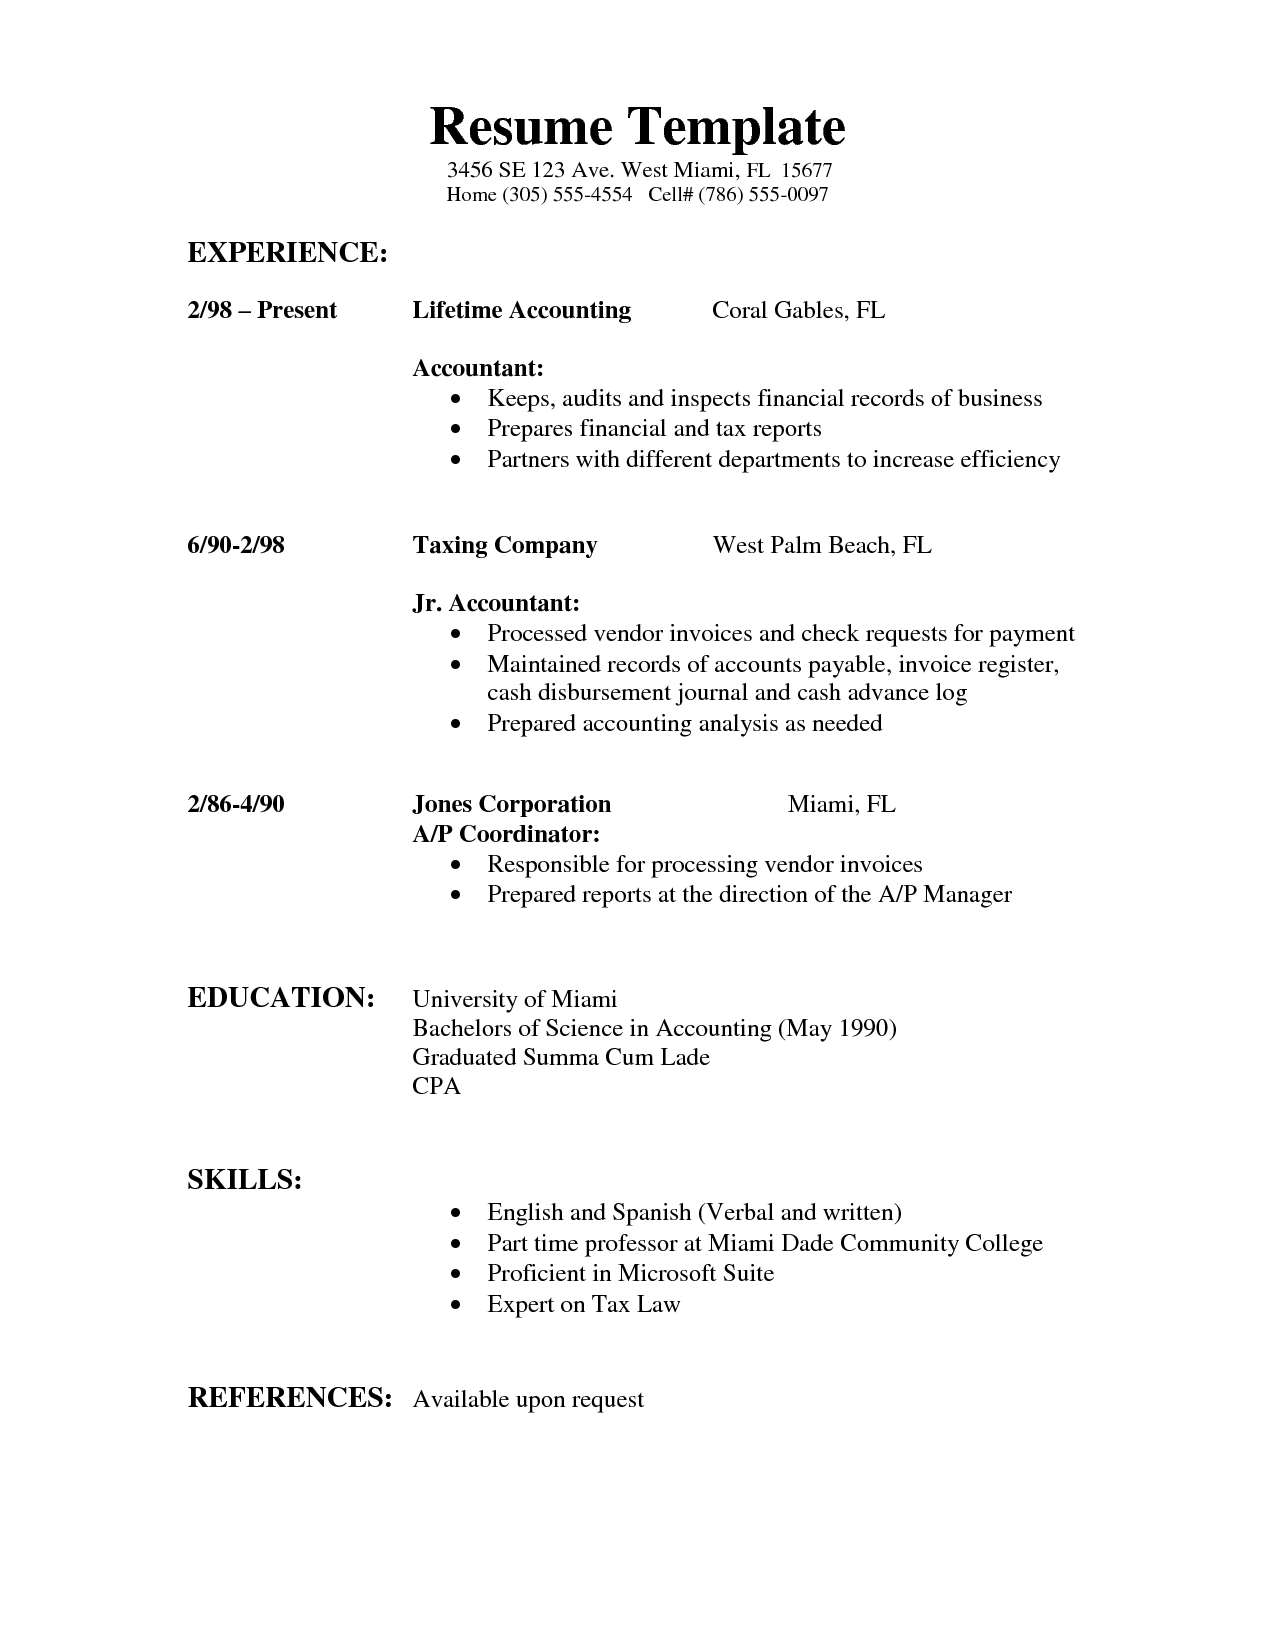 resume layouts for students customer service resume example resume layouts for students resume templates 412 examples resume builder resume examples 3 letter and resume really good